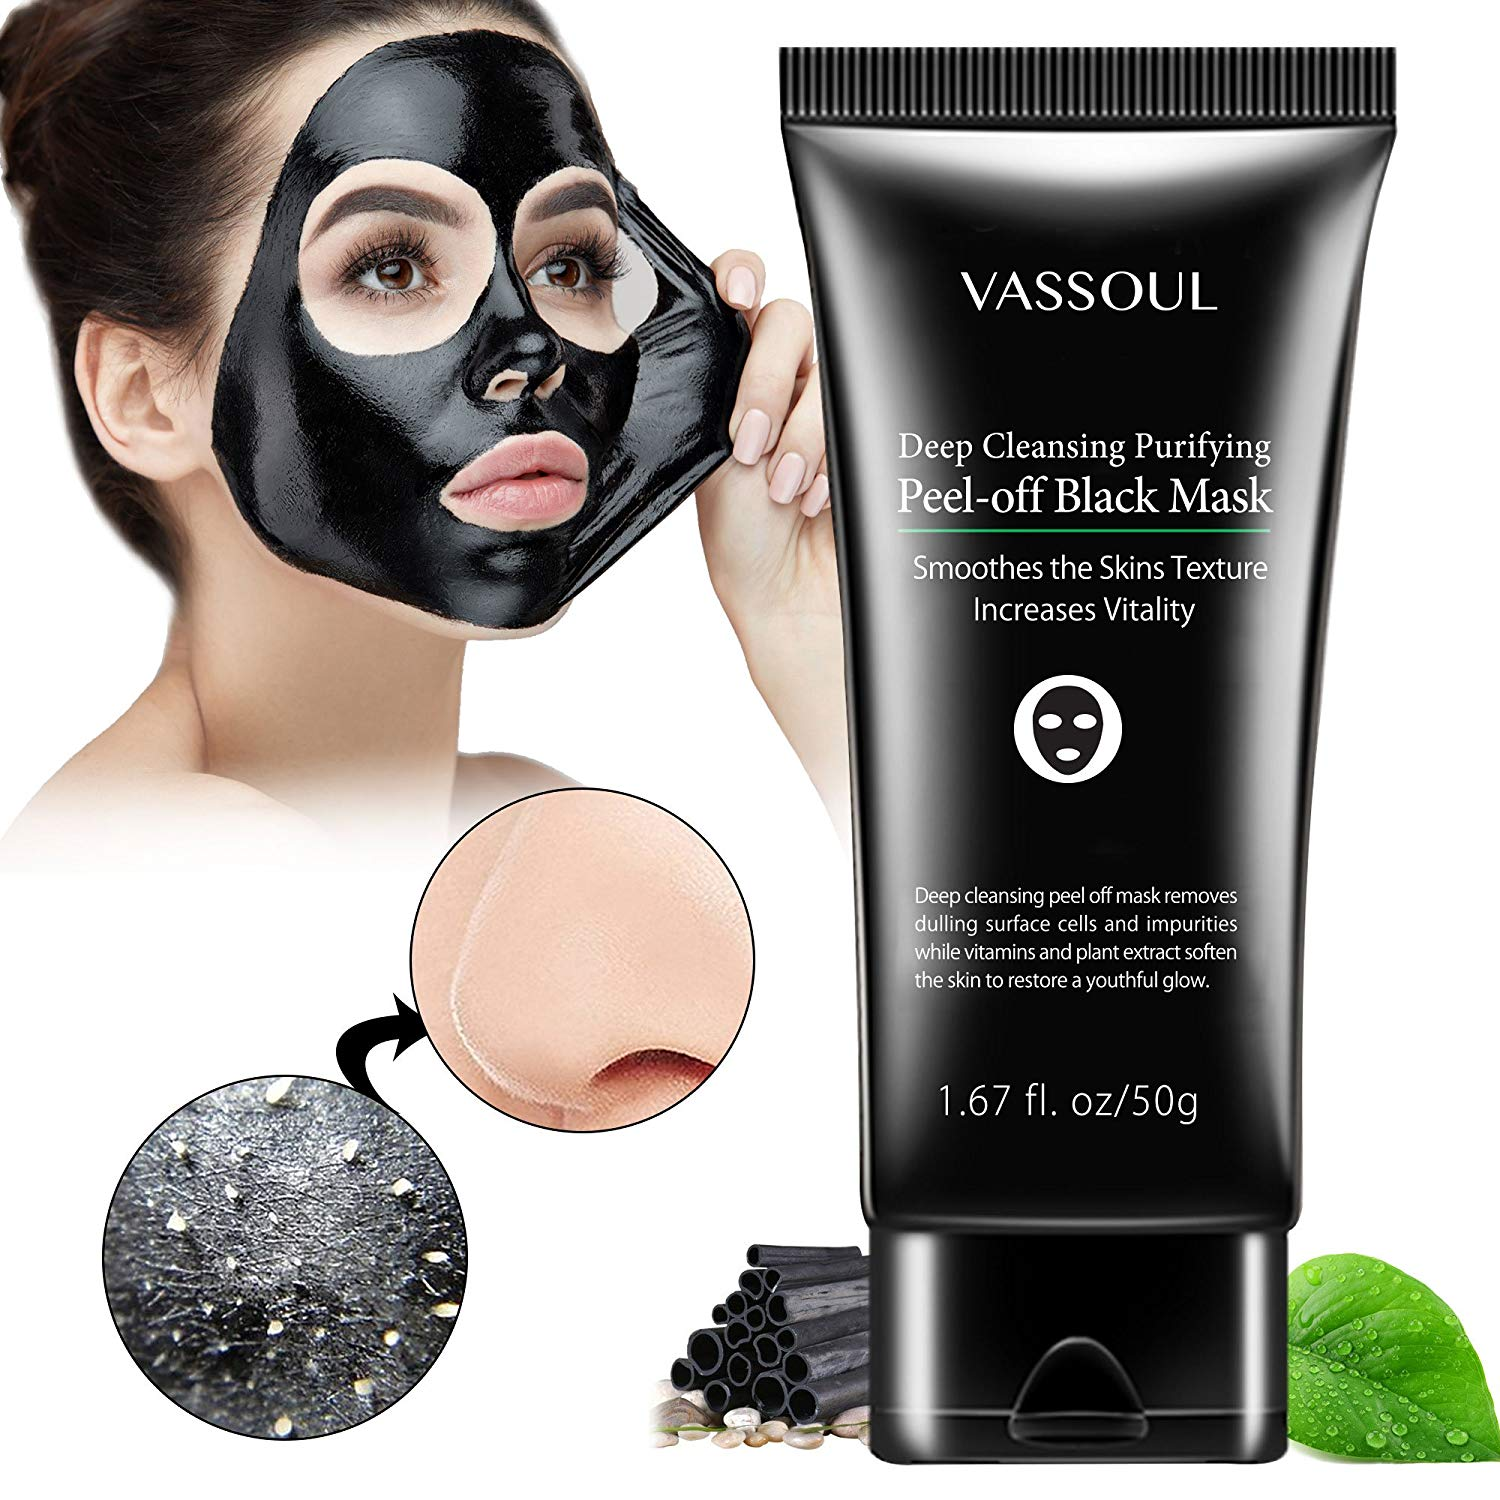 black mask facial cleanser